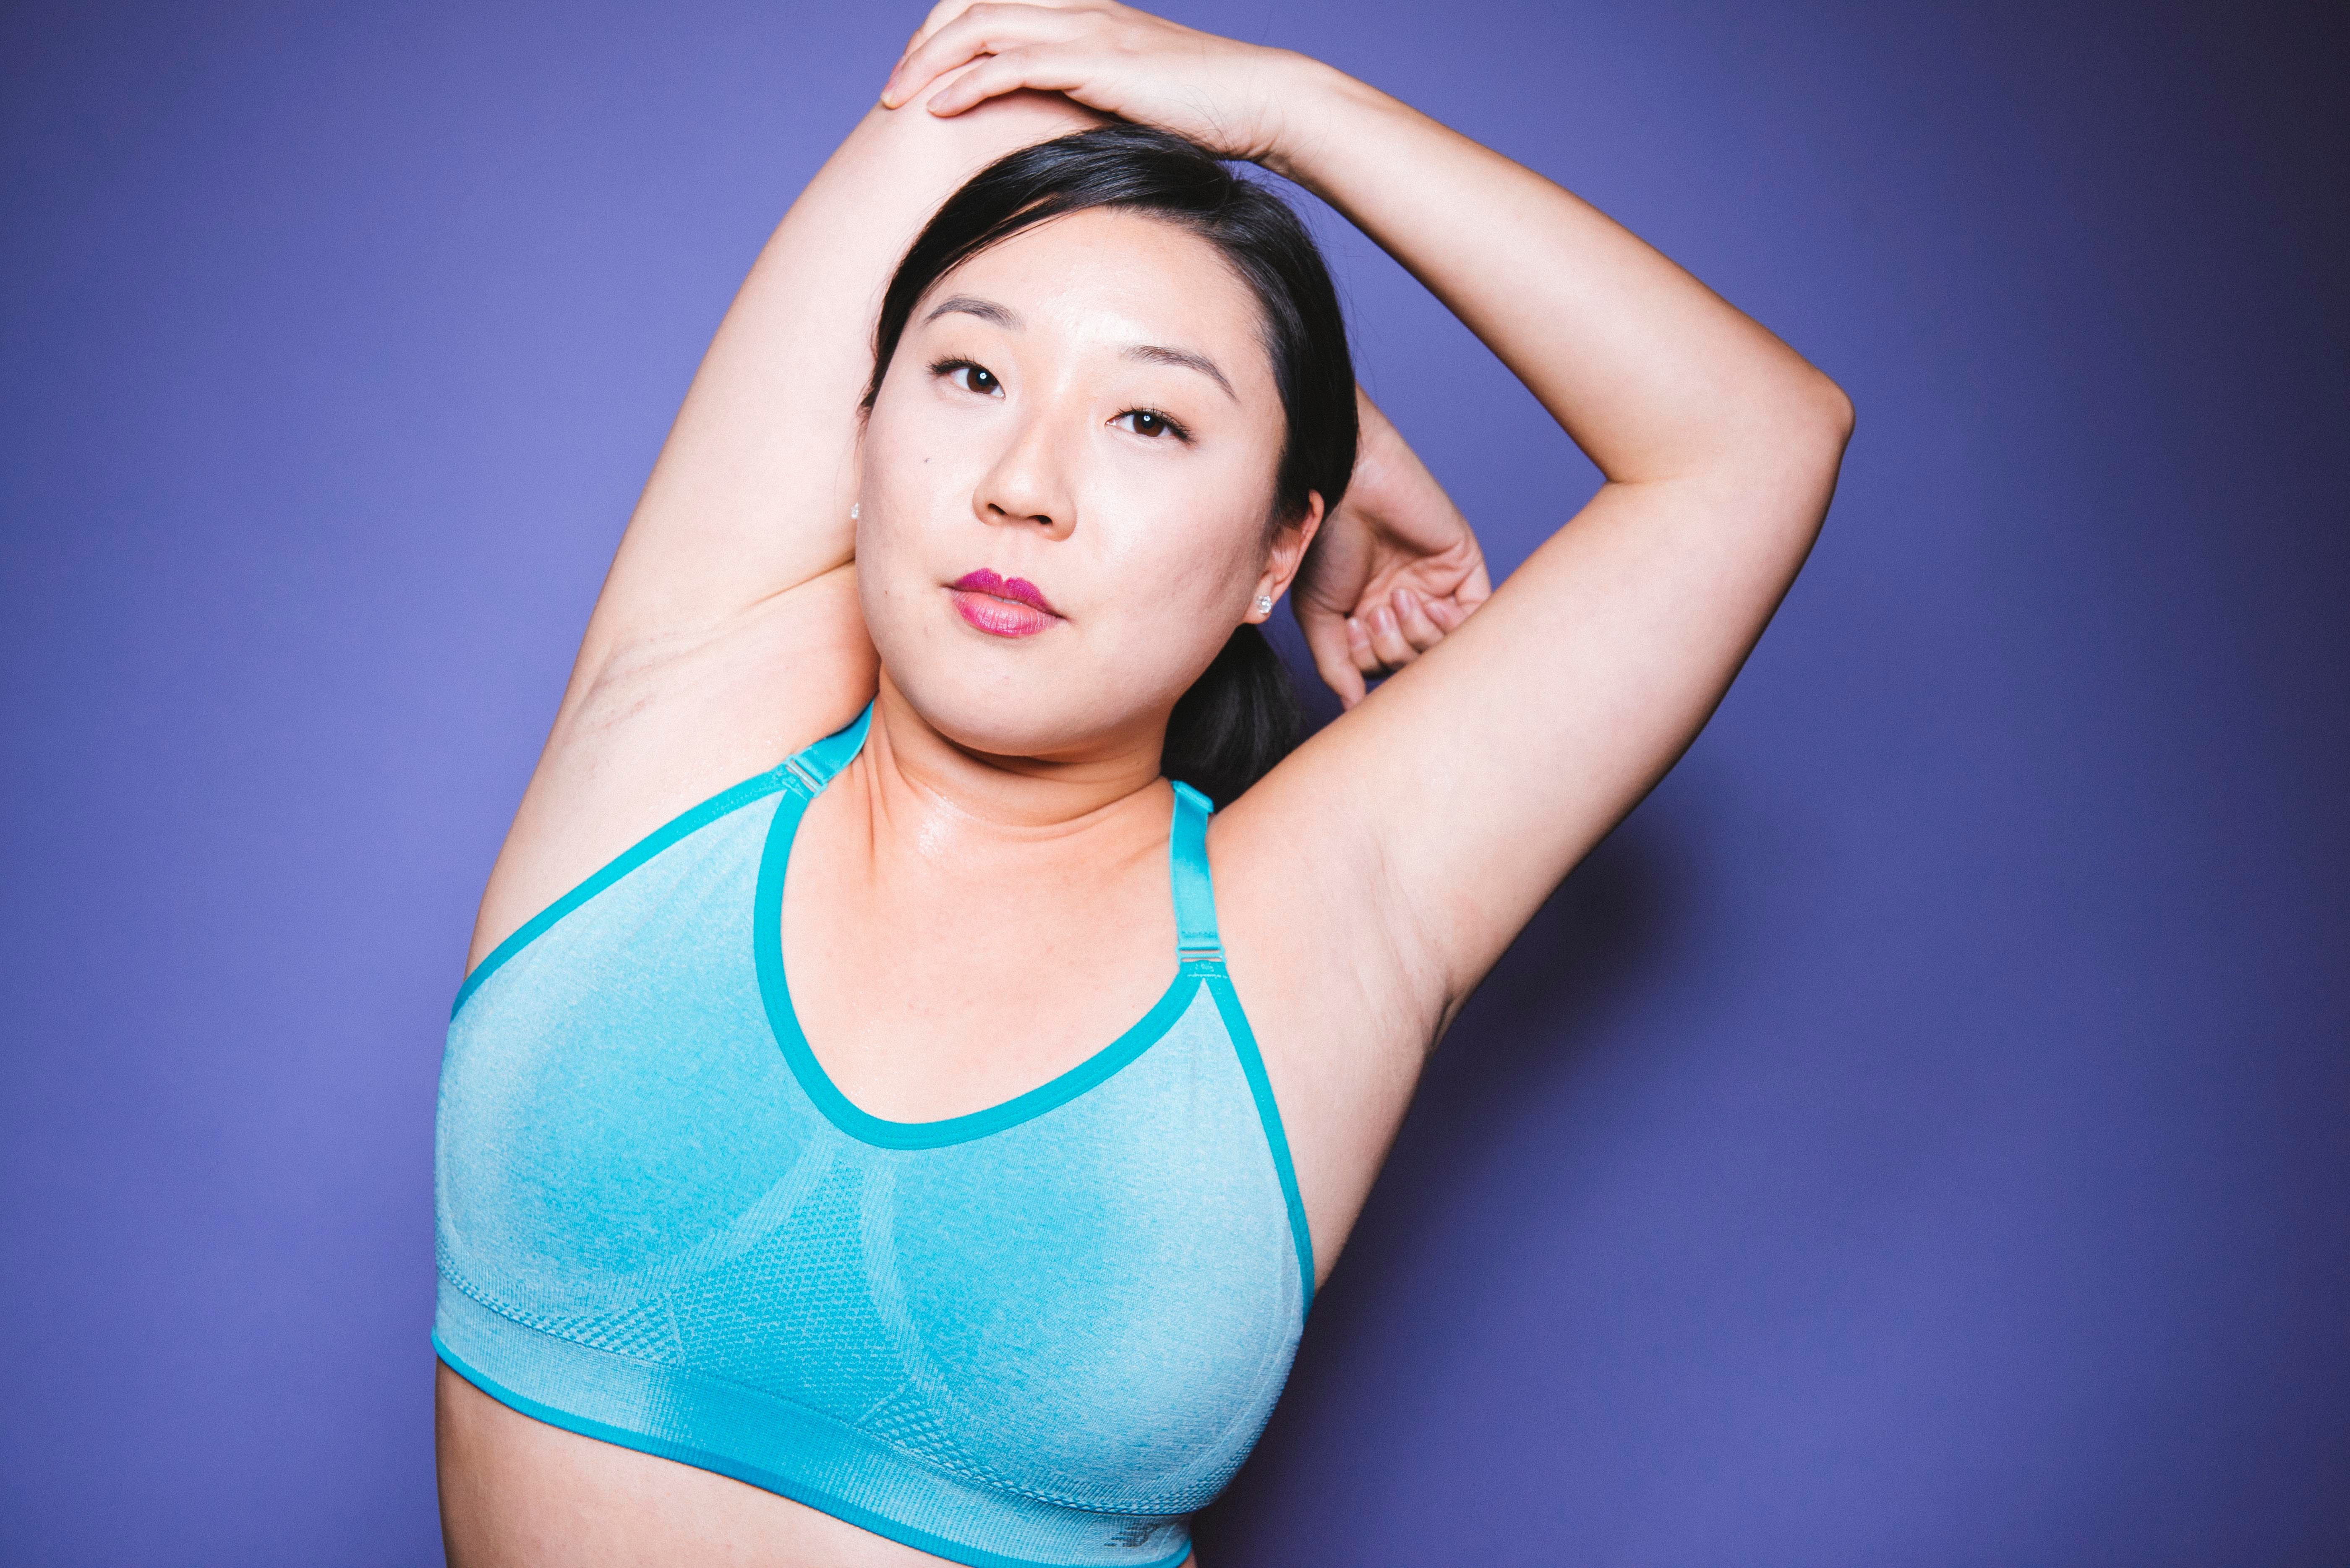 Does Exercising Affect Your Hormones? You Might Feel These 8